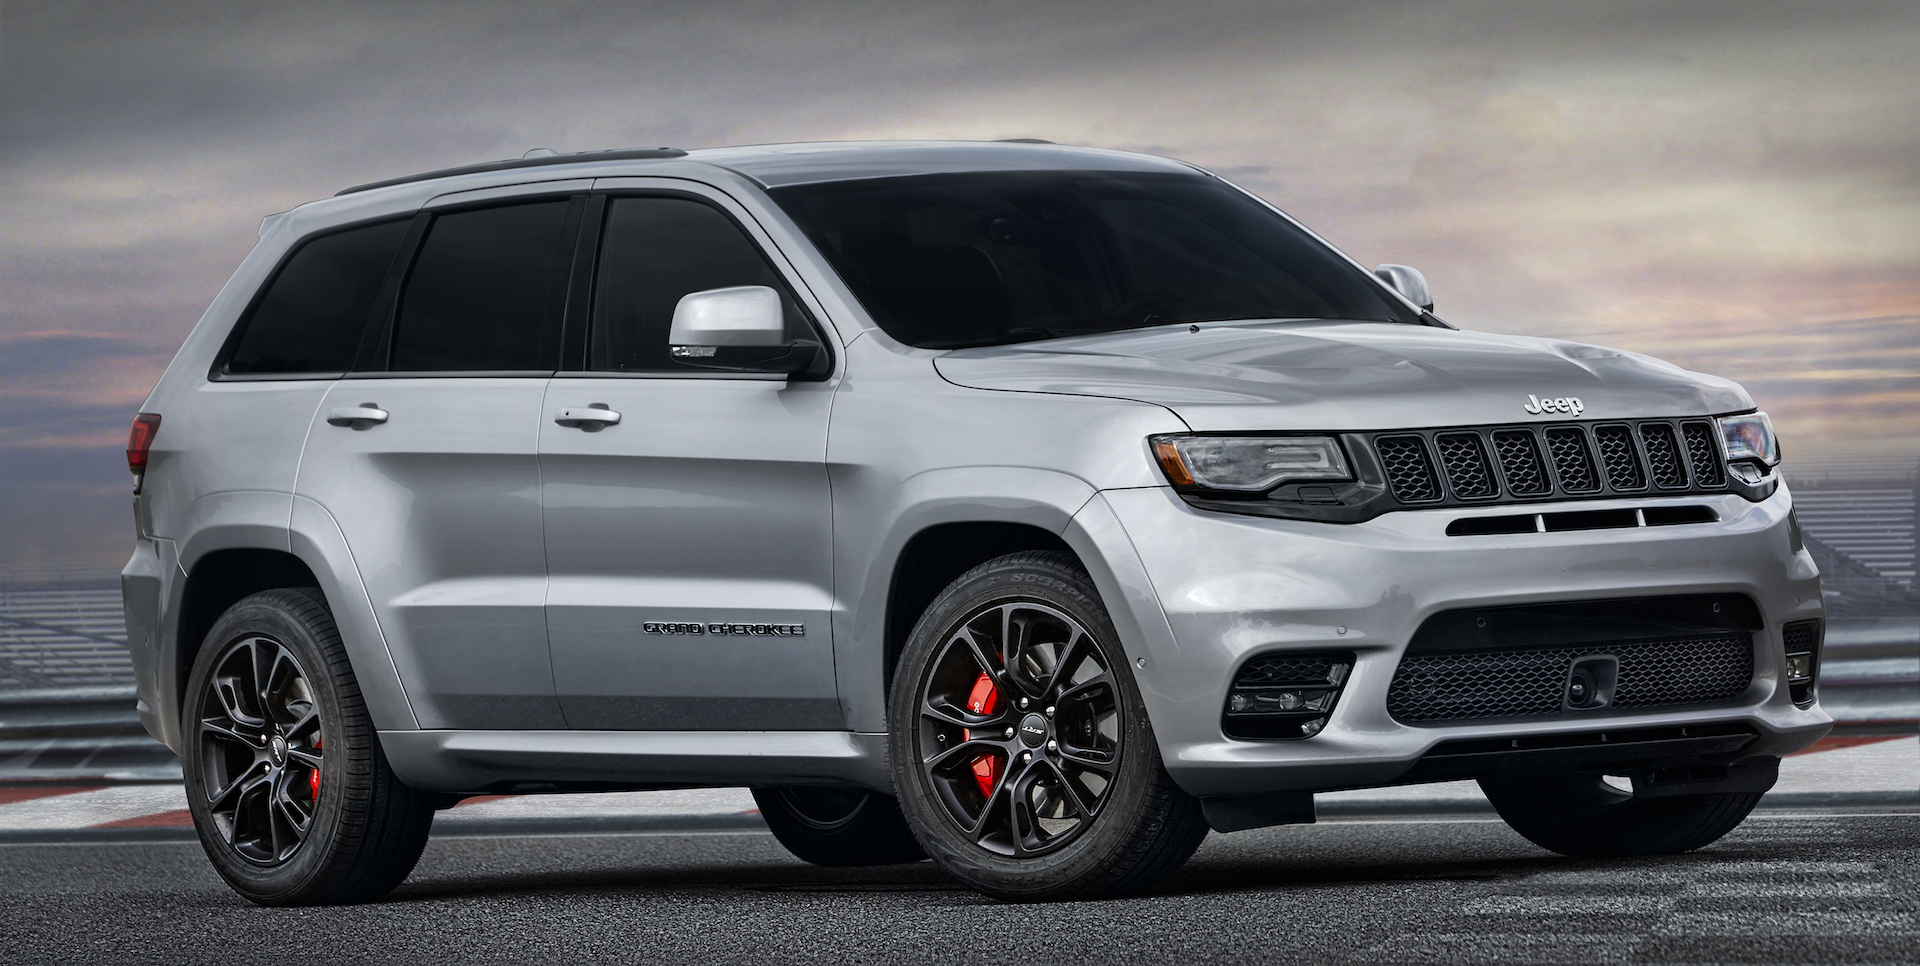 we now know what the hellcat-powered jeep grand cherokee looks like